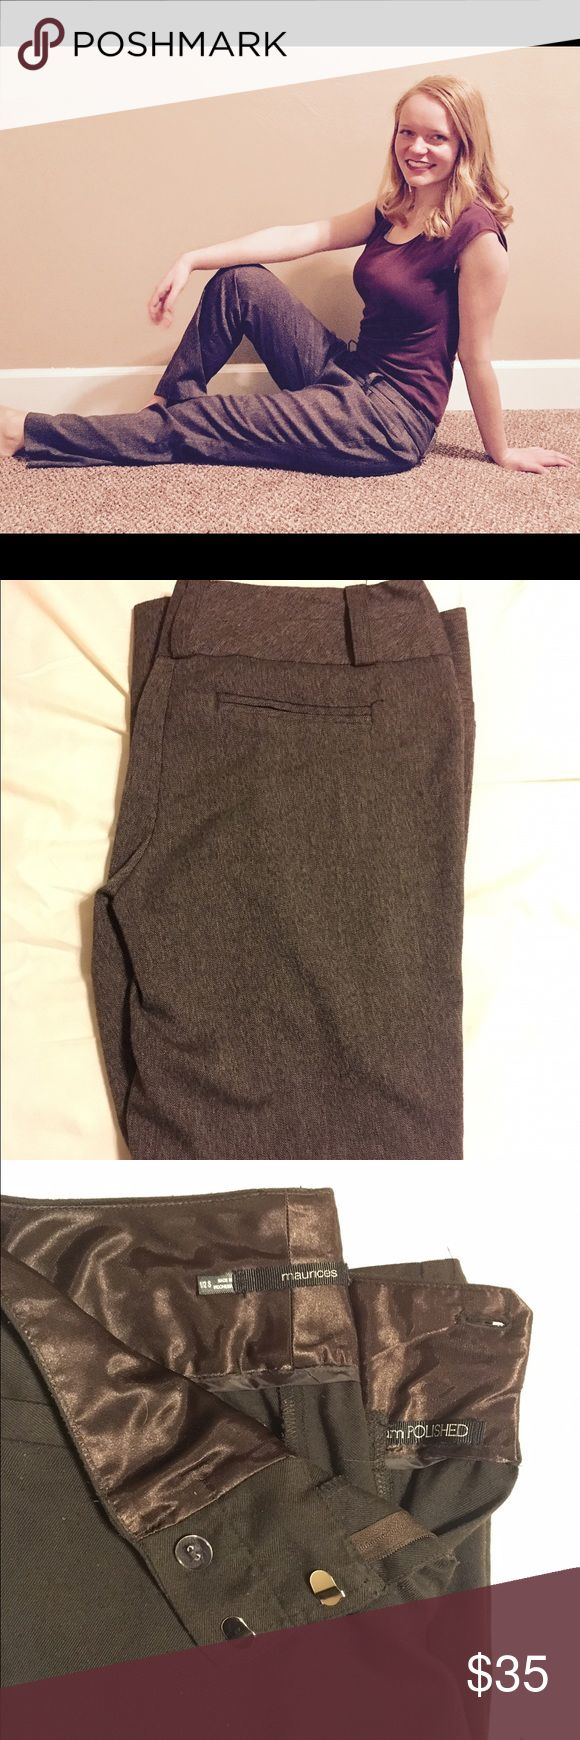 Brown Work Slacks!! Beautiful Brown Slacks that will turn heads!! Perfect to help you nail your next interview!! Worn only a few times! Maurices Pants Trousers